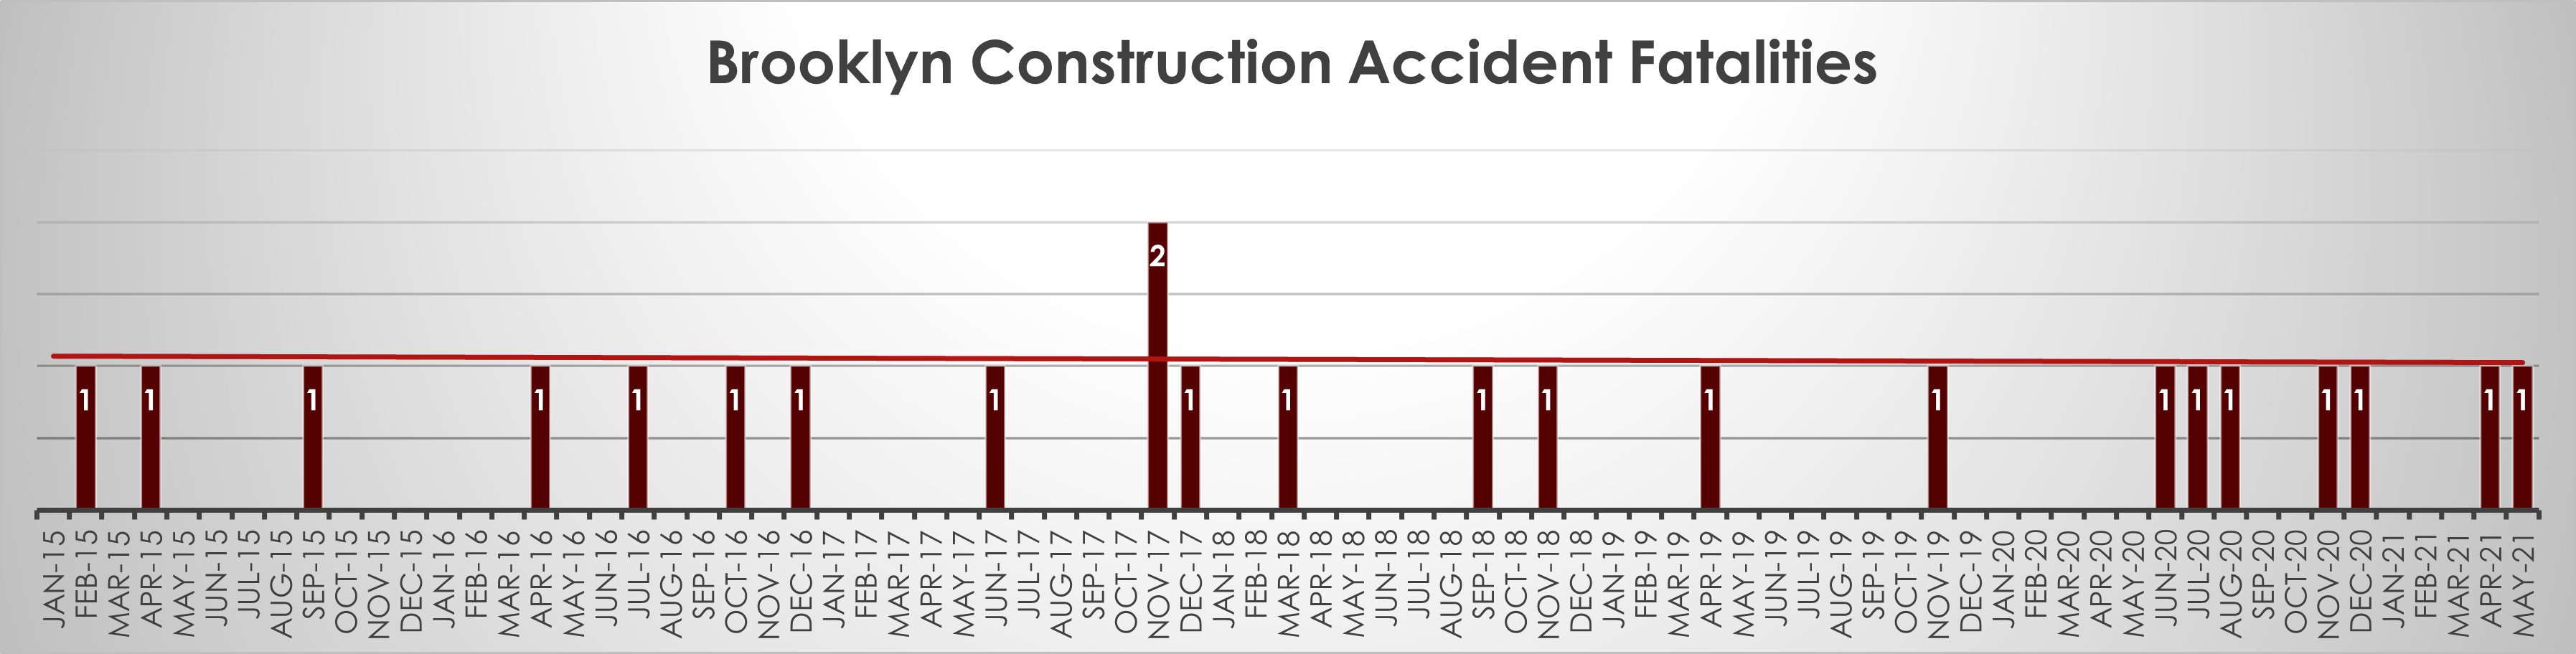 Construction fatalities in Brooklyn in May 21